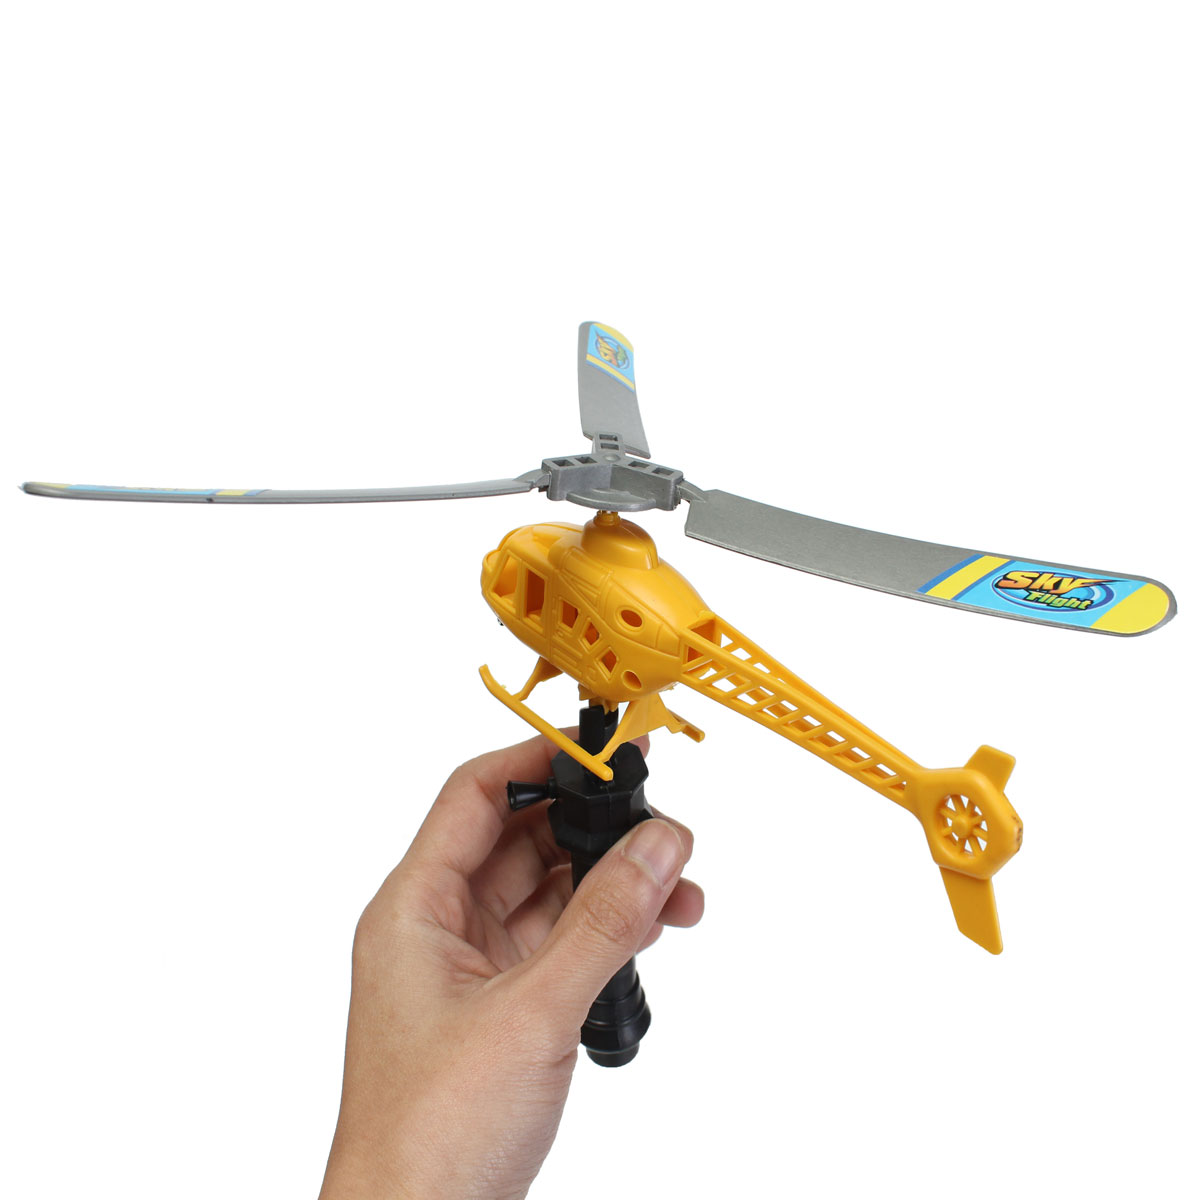 Ripcord Powered Launch Pull launcher Action Helicopter Kids Flying Toy